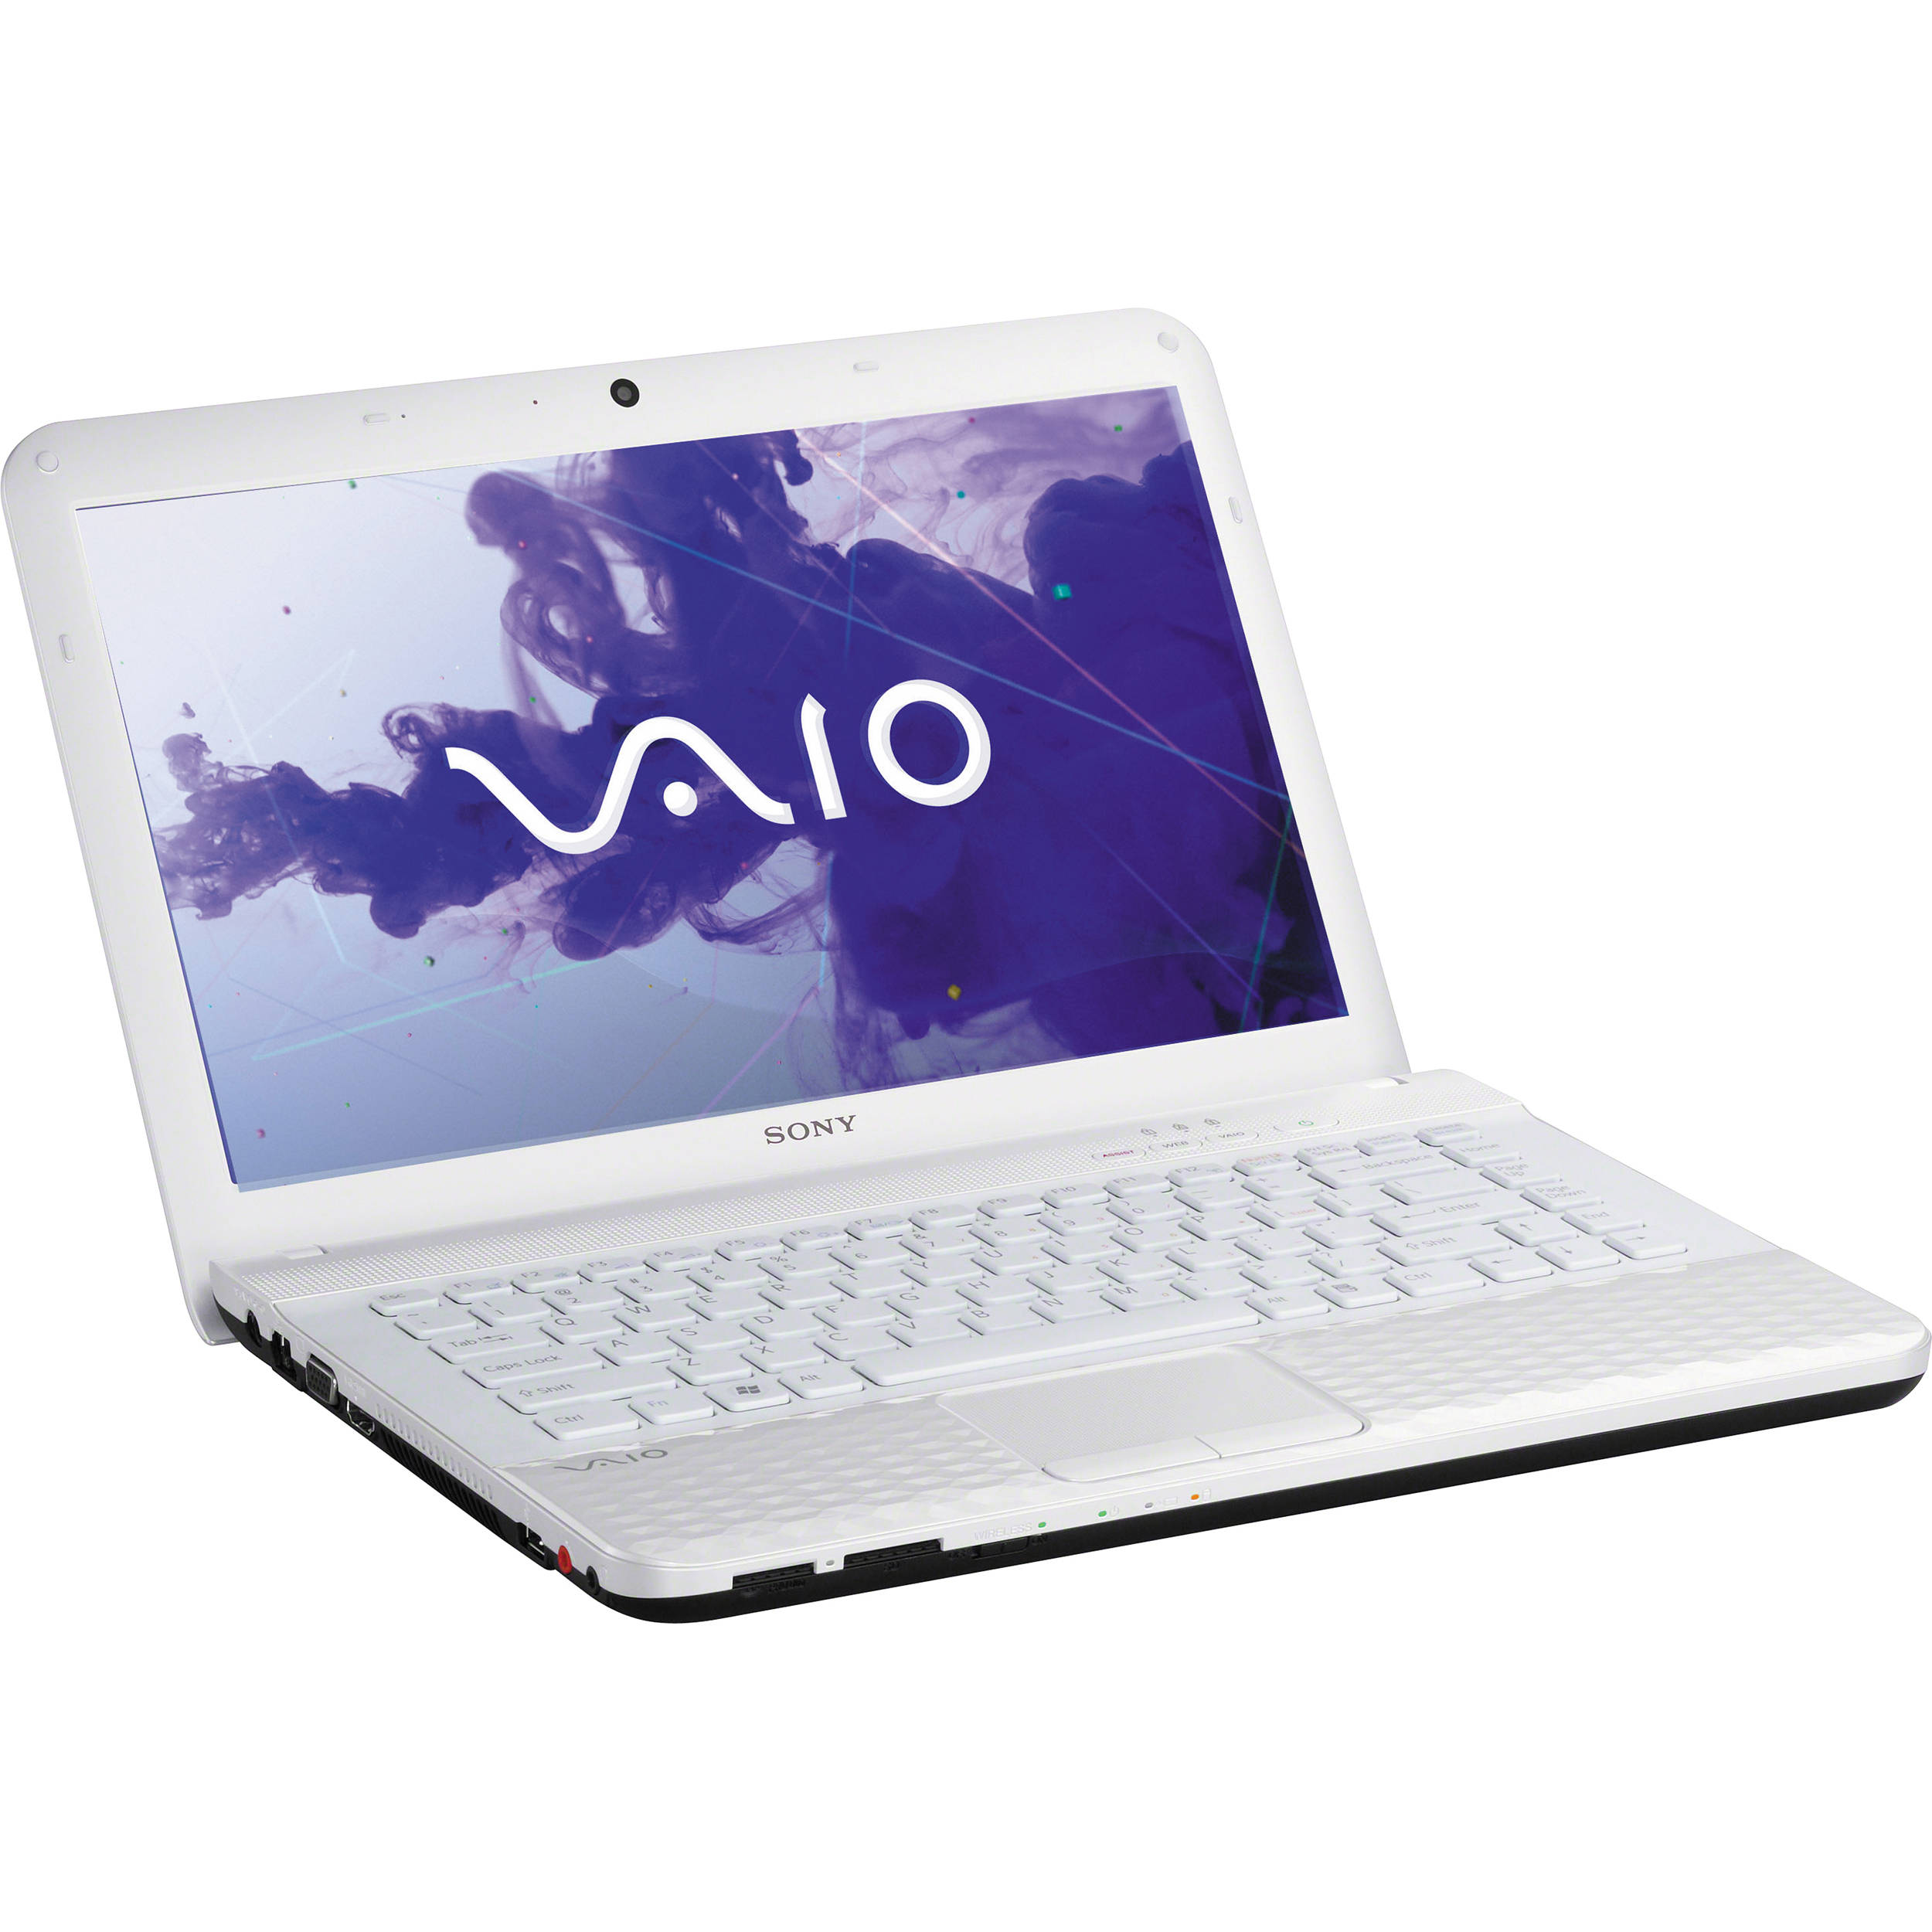 Sony Vaio VPCEG25FX/W Smart Network Windows 8 X64 Treiber